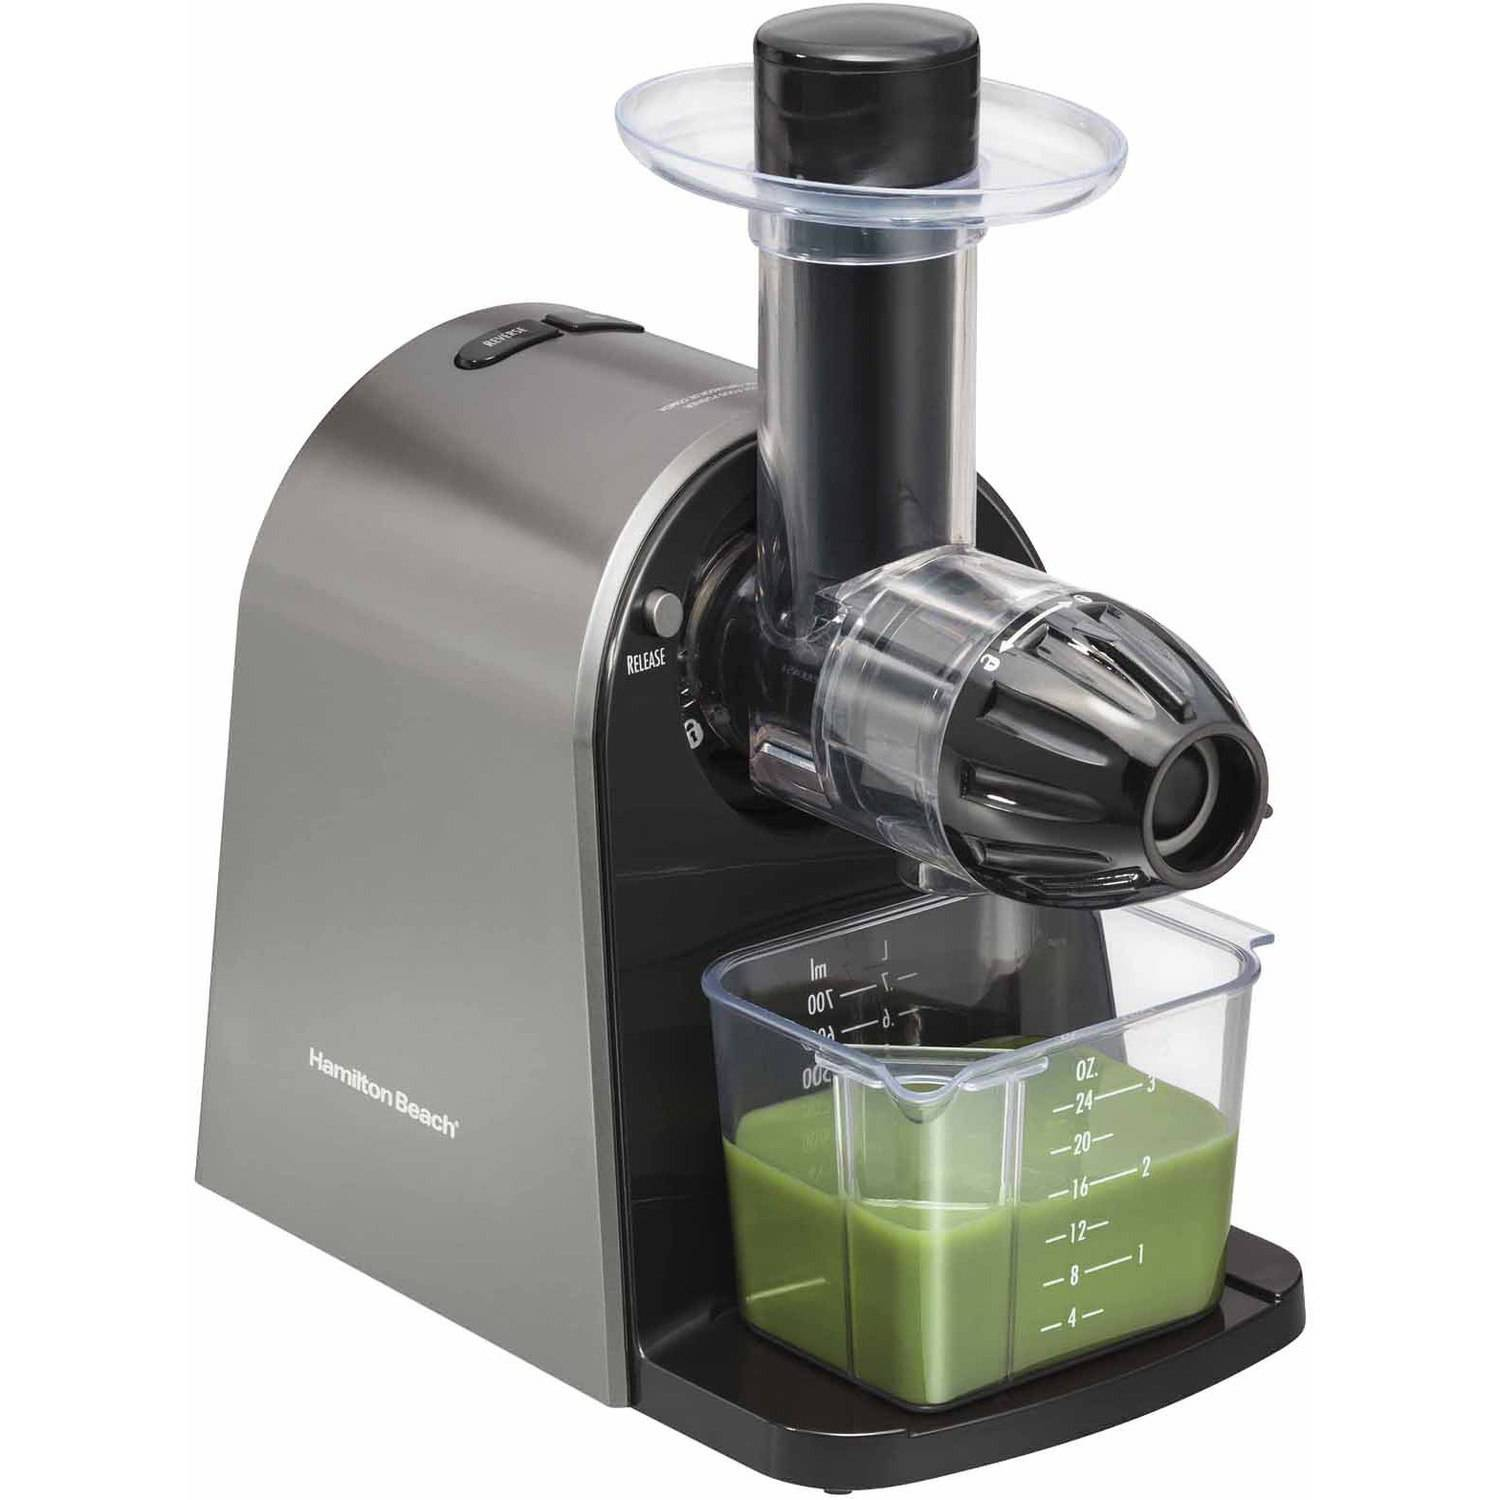 Slow Press Juicer Recipes : Cold Press Juicer Machine - Masticating Juicer Slow Juice Extractor Maker Electric Juicing ...